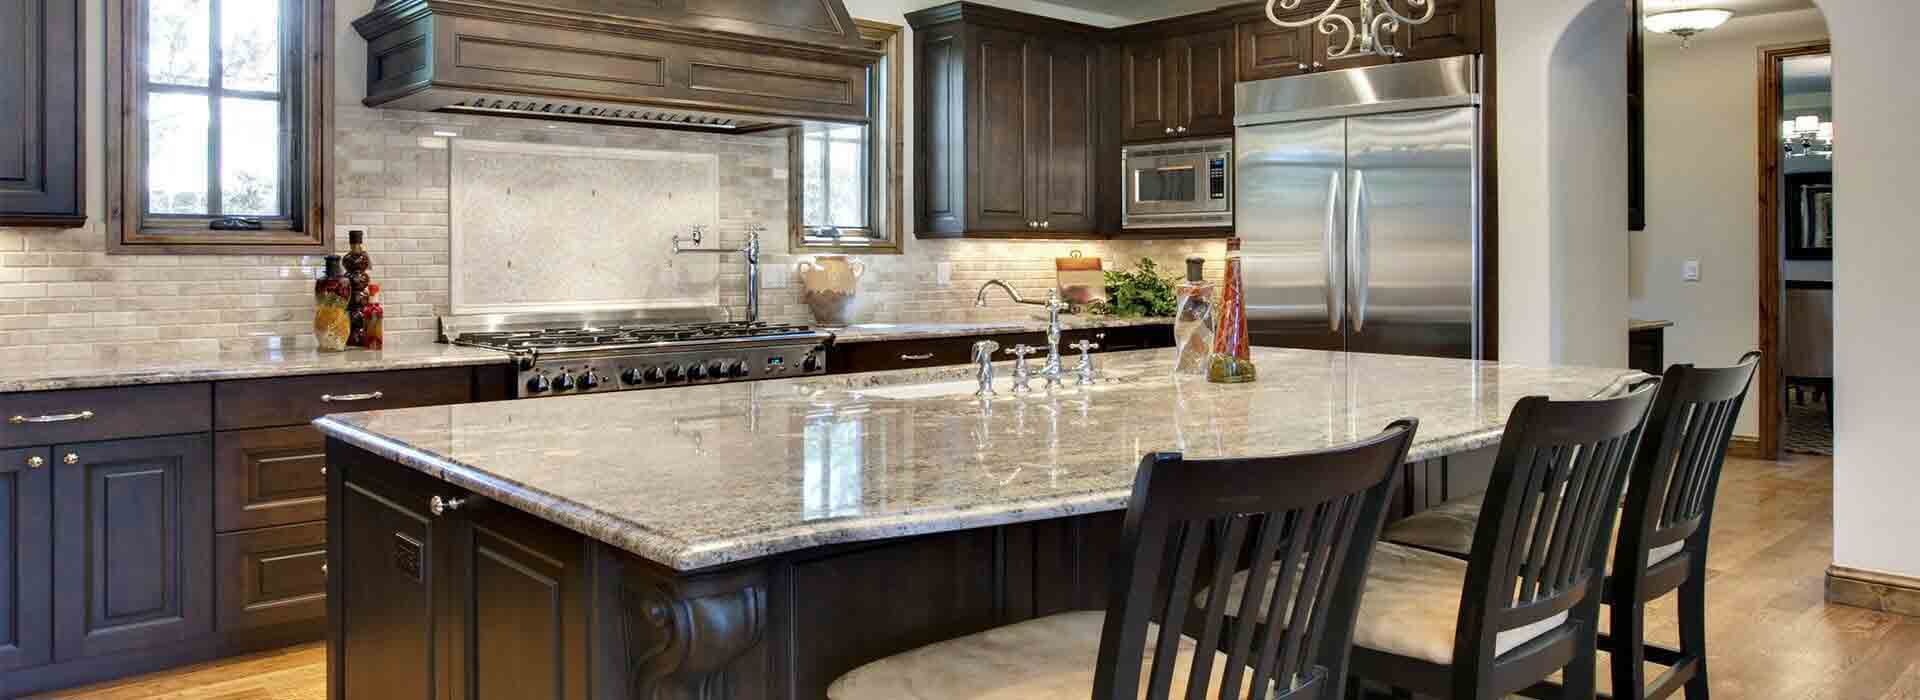 Granite Works | Rockville, MD | Custom Countertops and Cabinets